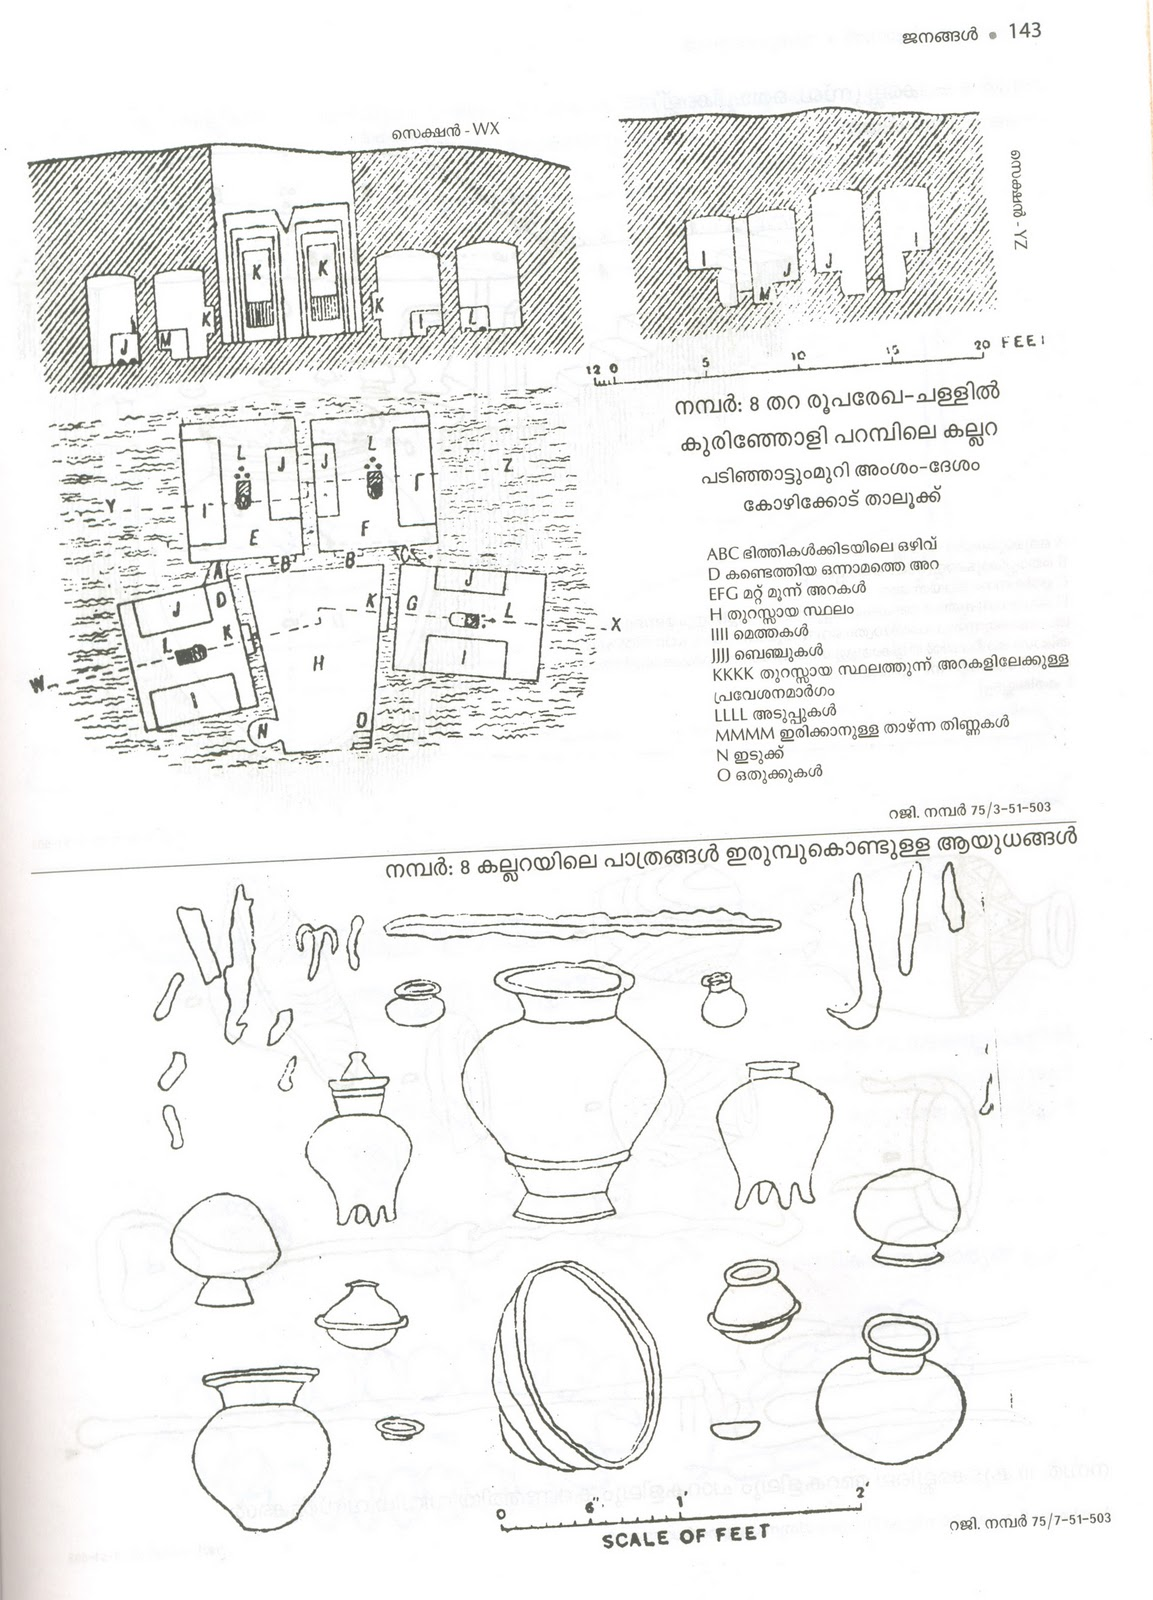 Megalith Sketches published by william logan in Malabar Manual